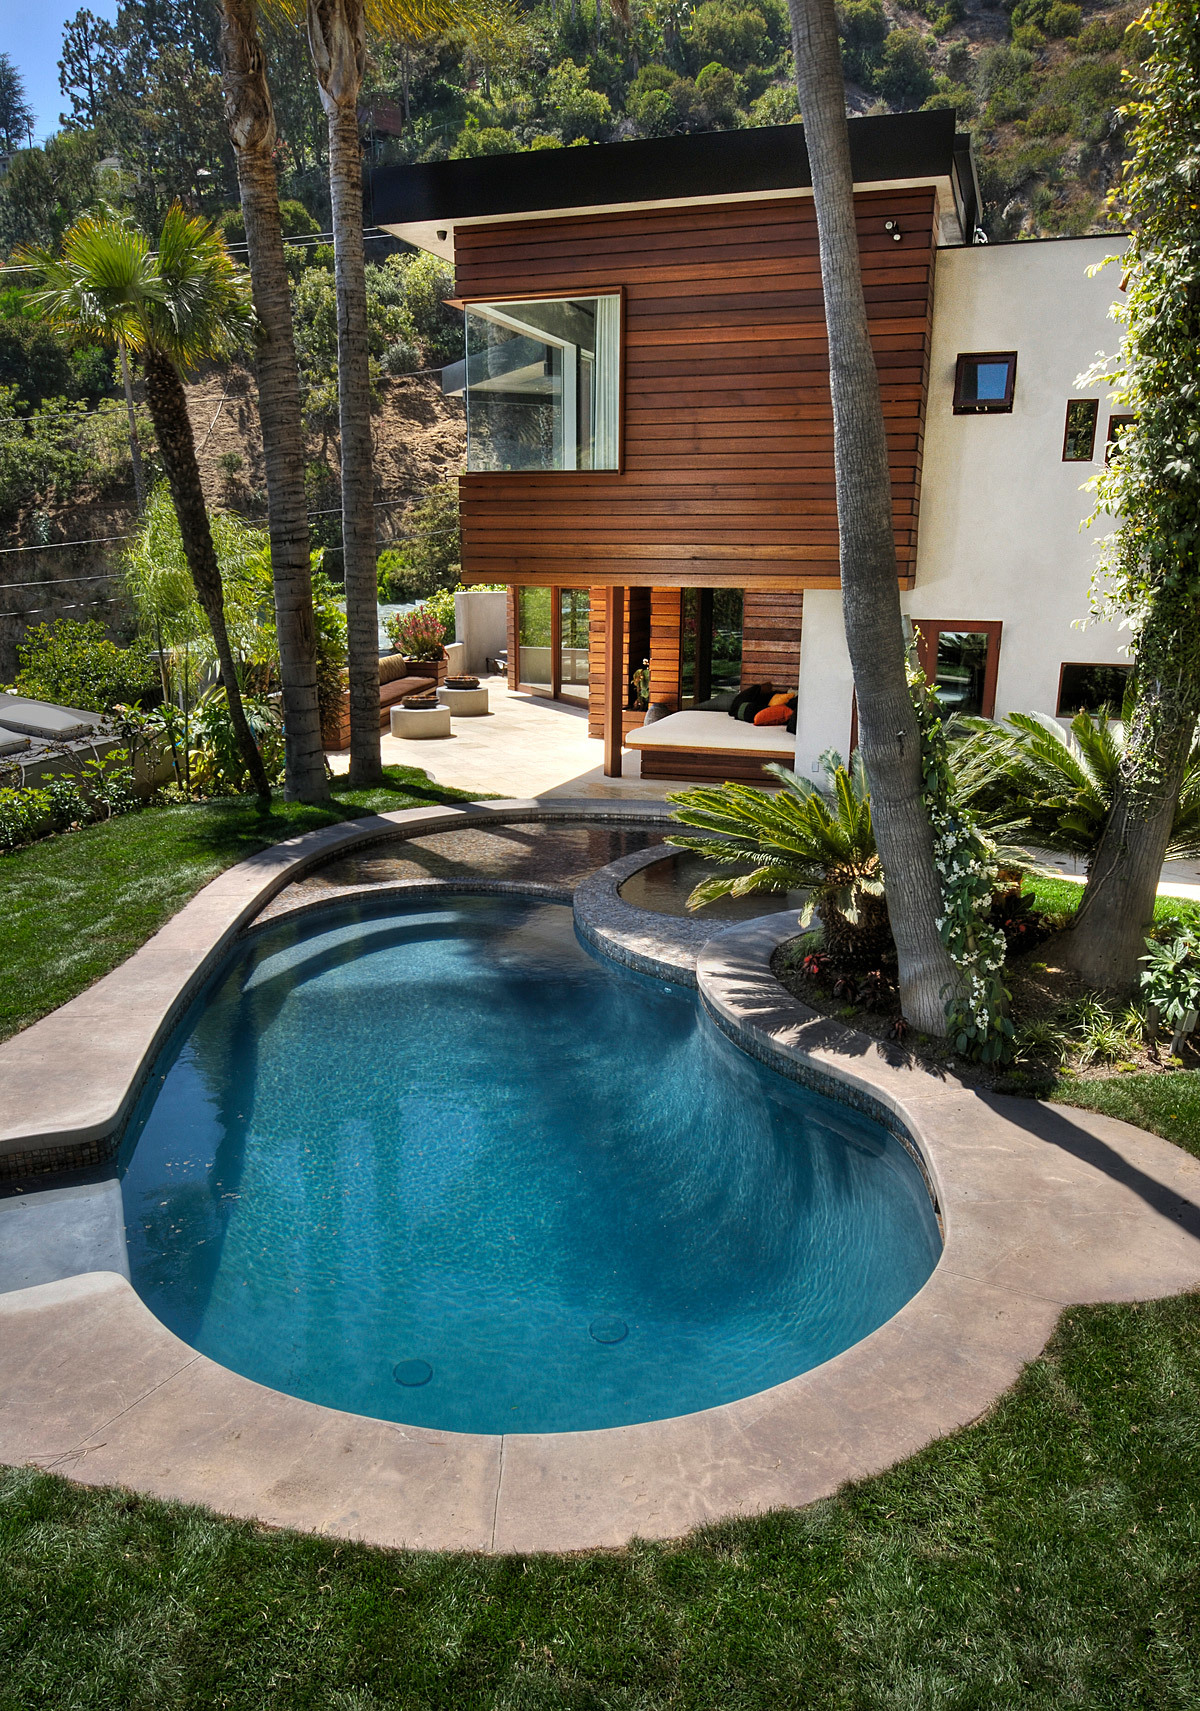 West Hollywood Residence in West Hollywood, CA by (fer) studio, LLP